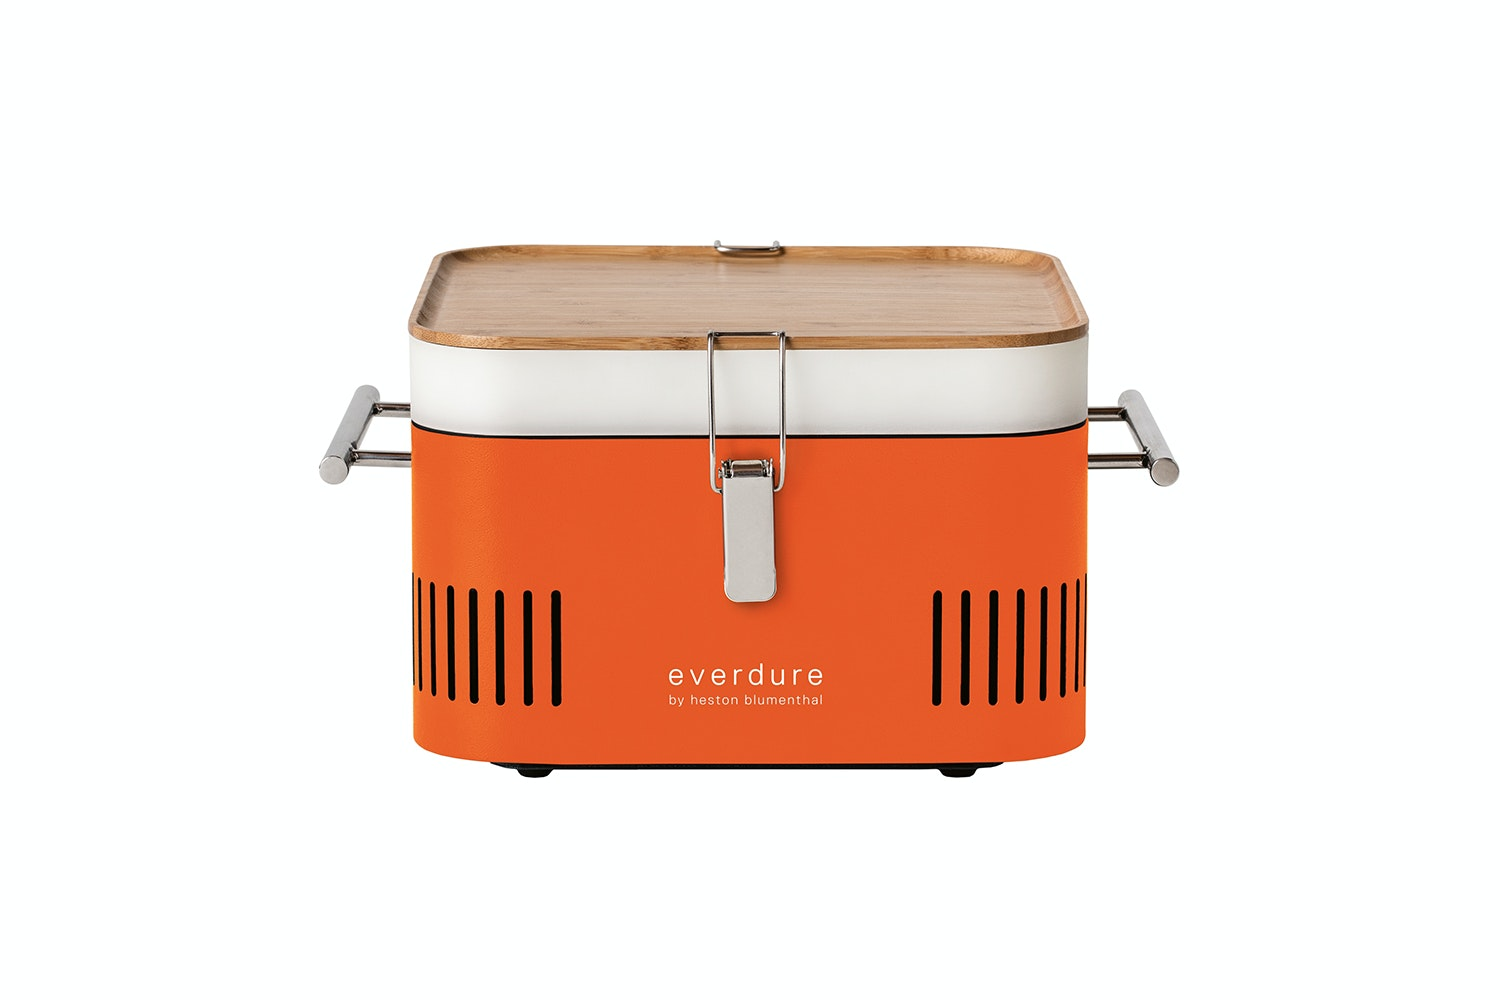 Everdure Cube Portable Charcoal Barbeque by Heston Blumenthal